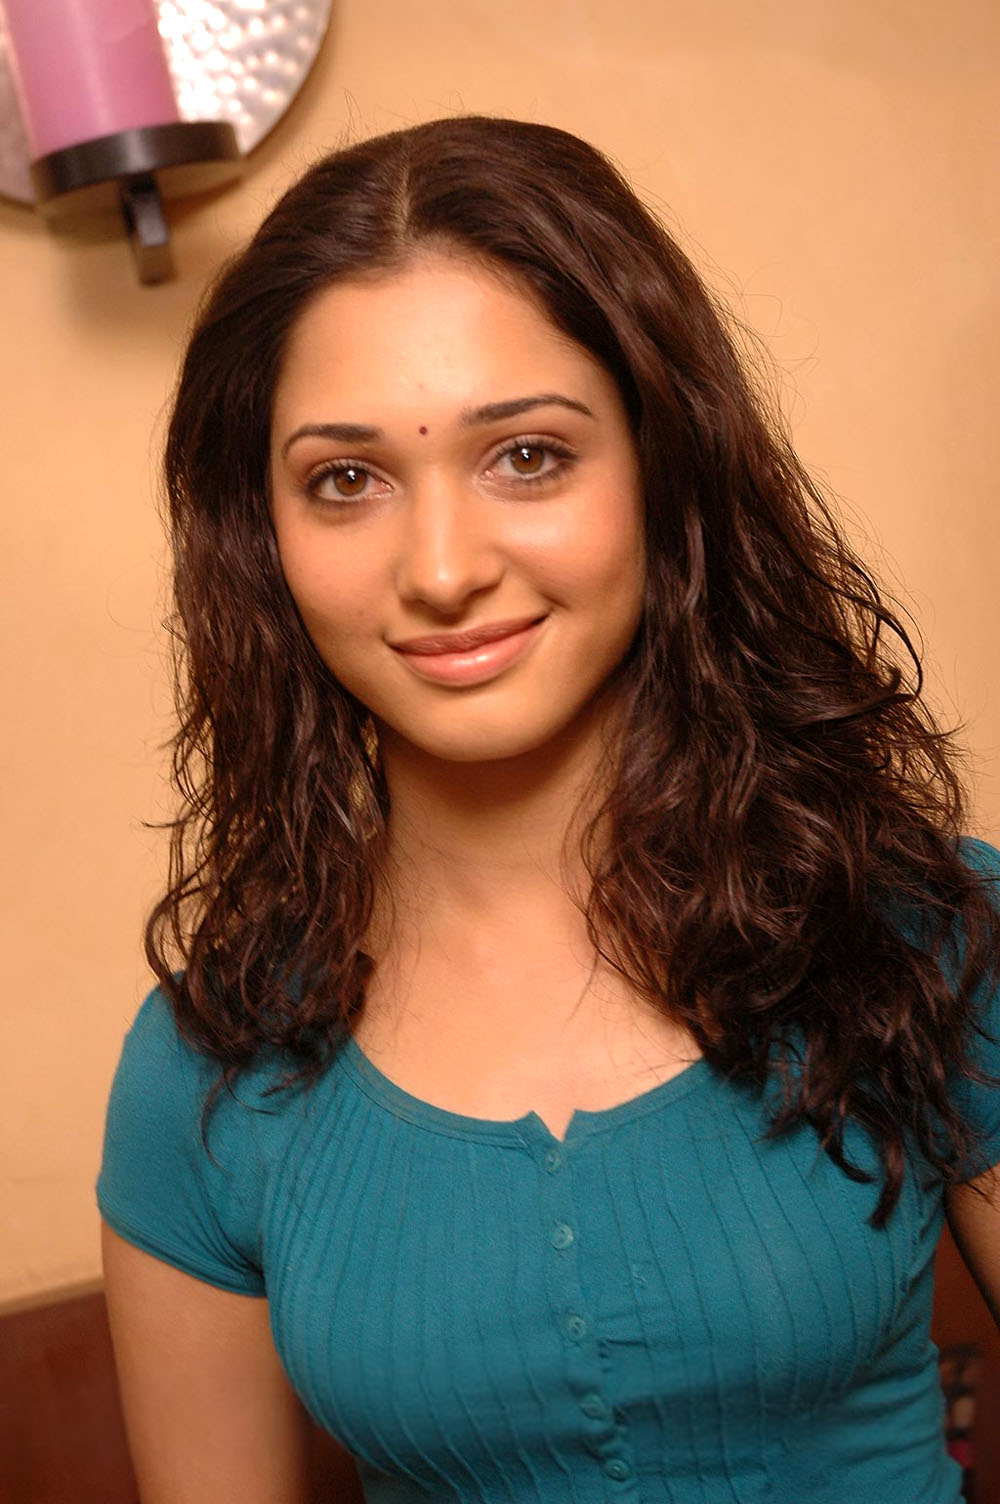 Tamanna Bangalore: The Cute, Charming And D Gorgeous Diva In Town